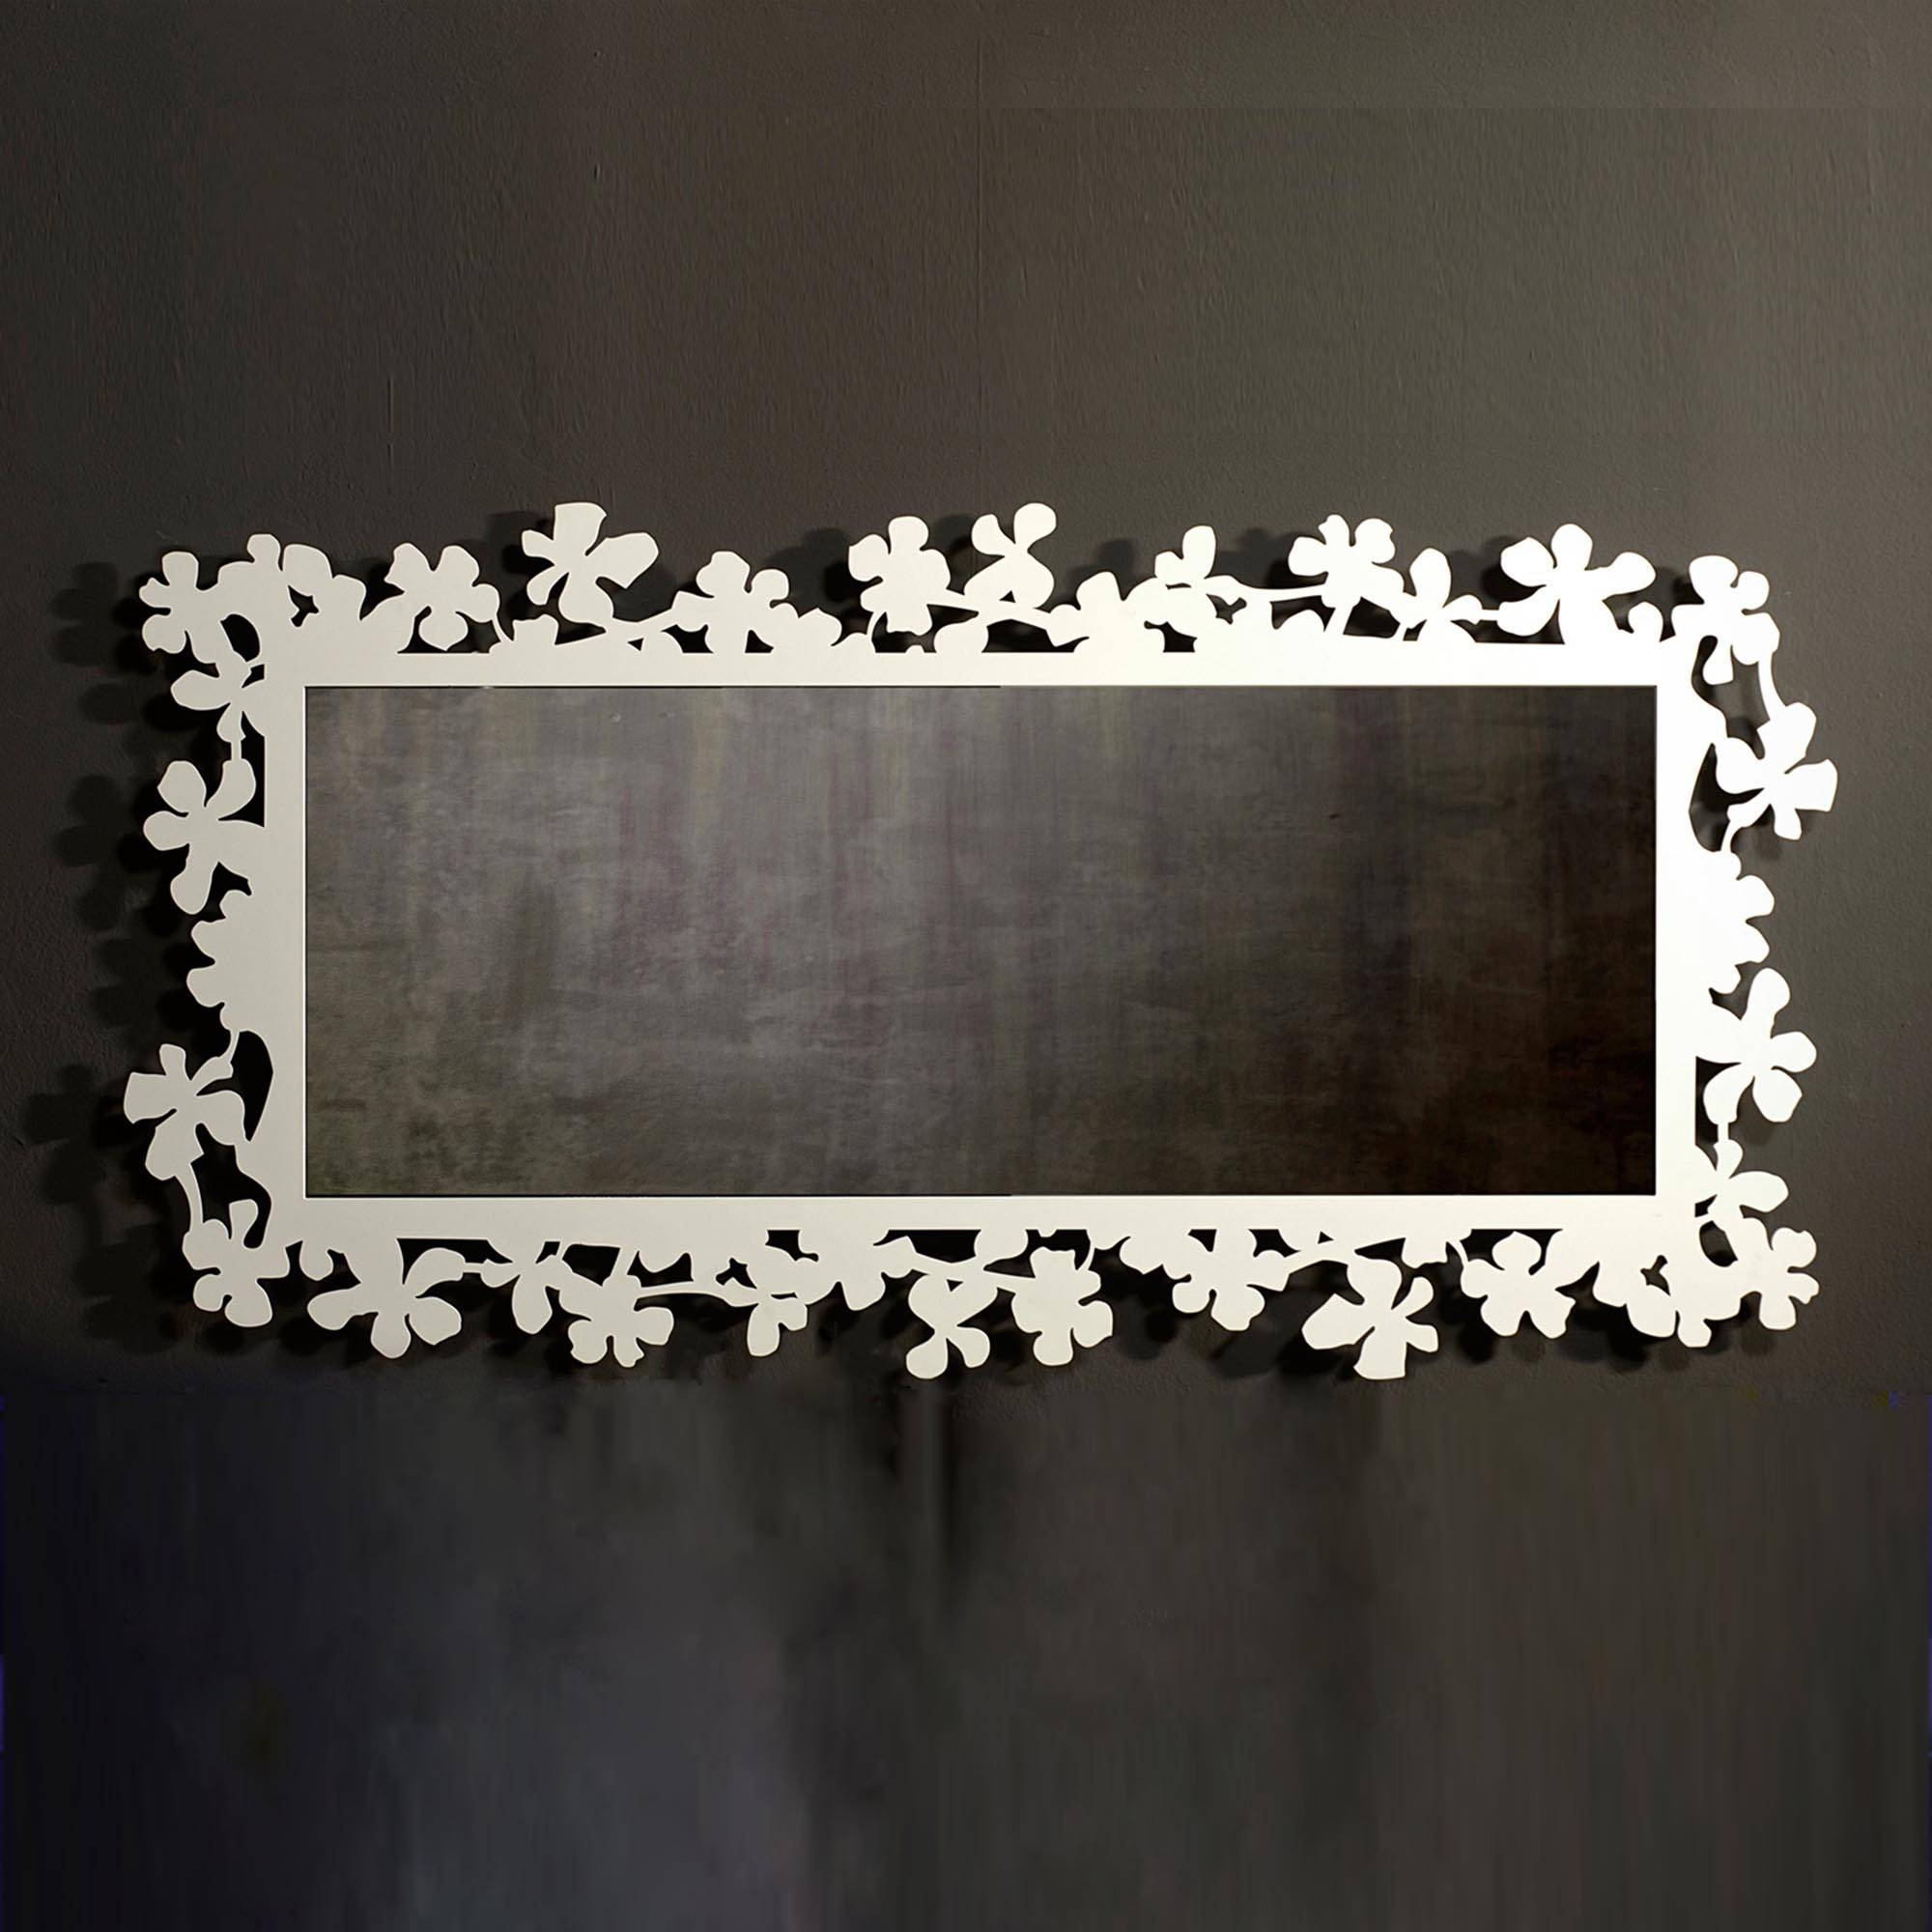 Mirror Flowercosatto Designed With Flower-Shaped Decorations inside Large Landscape Mirrors (Image 18 of 25)